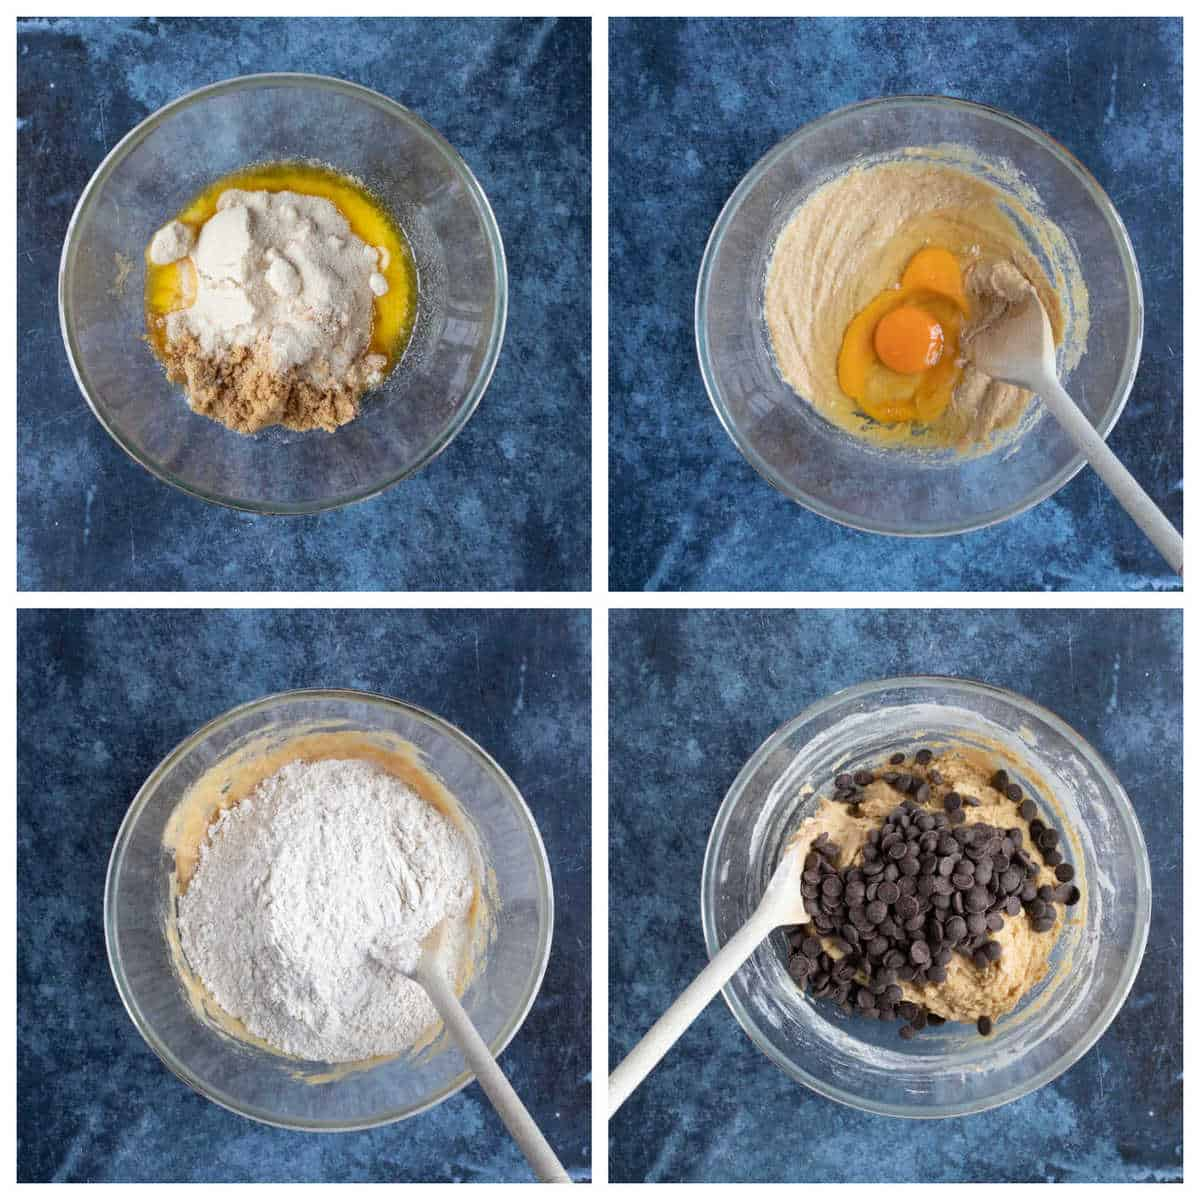 Step by step photo instructions for making Biscoff blondies part 1.